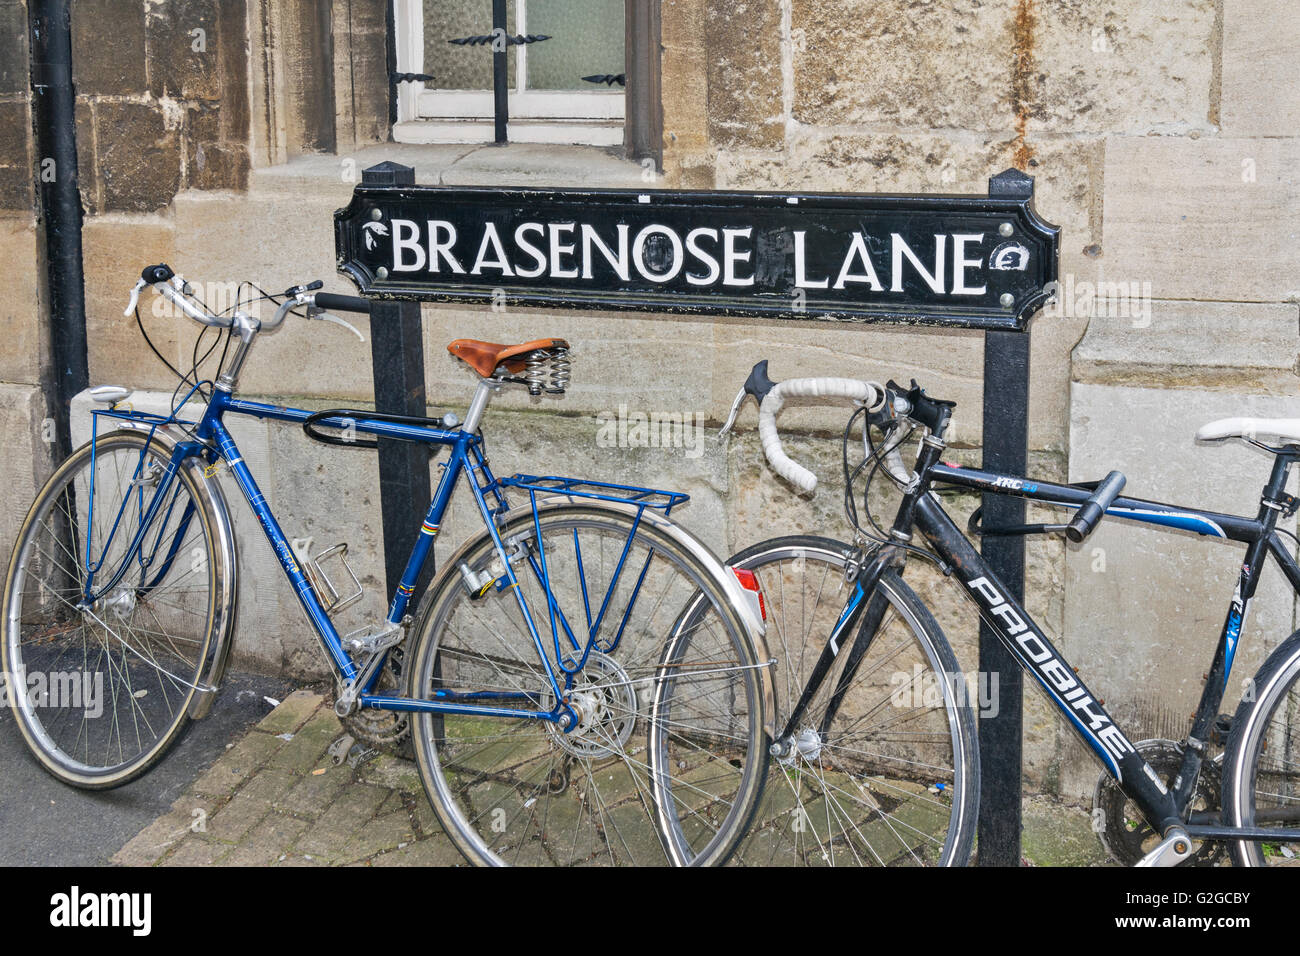 BICYCLES AND SIGN BRASENOSE LANE OXFORD CITY - Stock Image